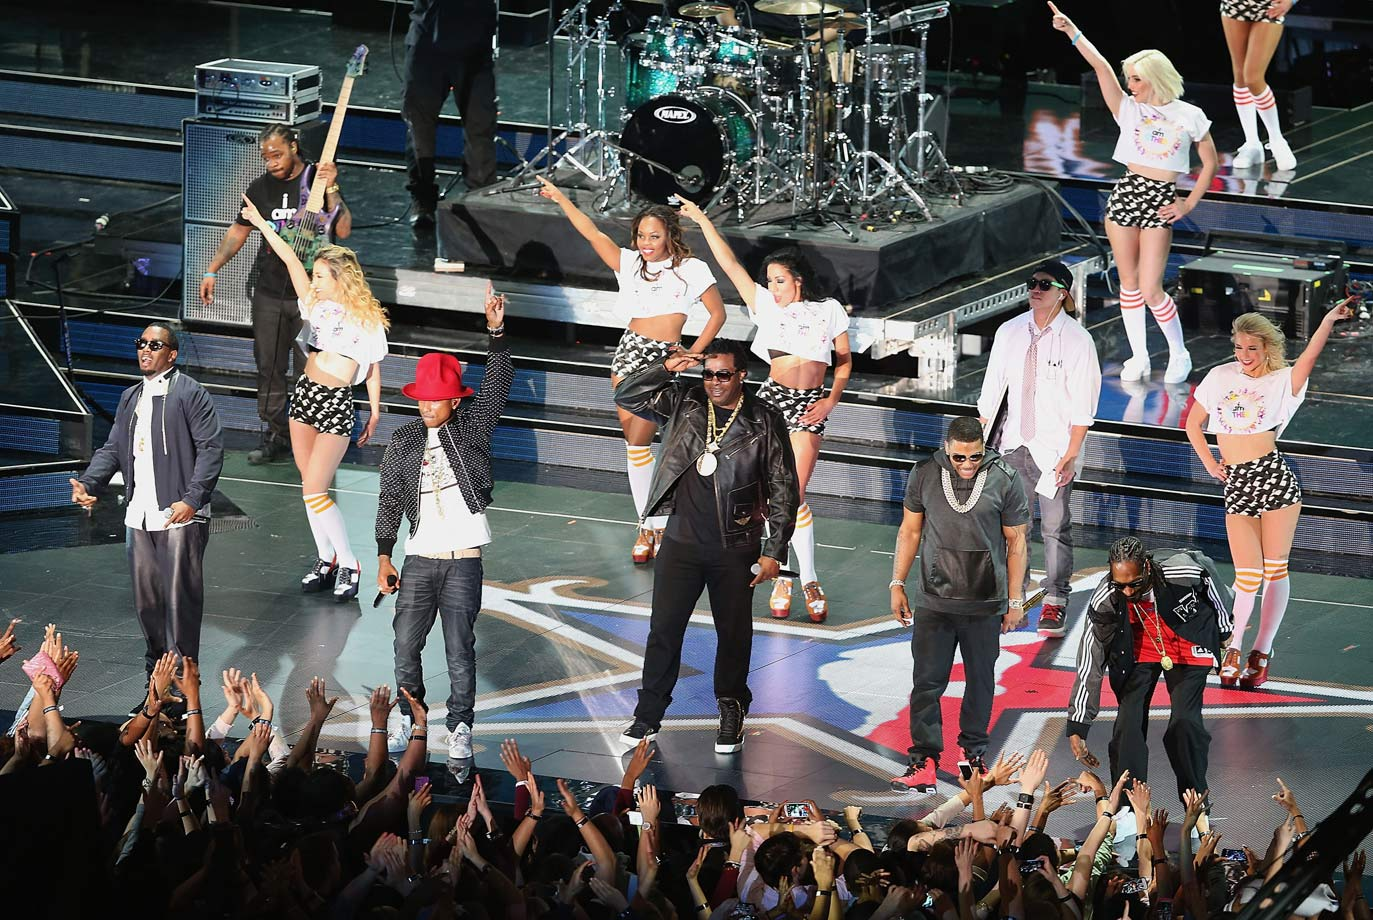 Sean Combs, Pharrell Williams, Busta Rhymes, Nelly and Snoop Dogg perform before the NBA All-Star game on Feb. 16, 2014 at the Smoothie King Center in New Orleans.